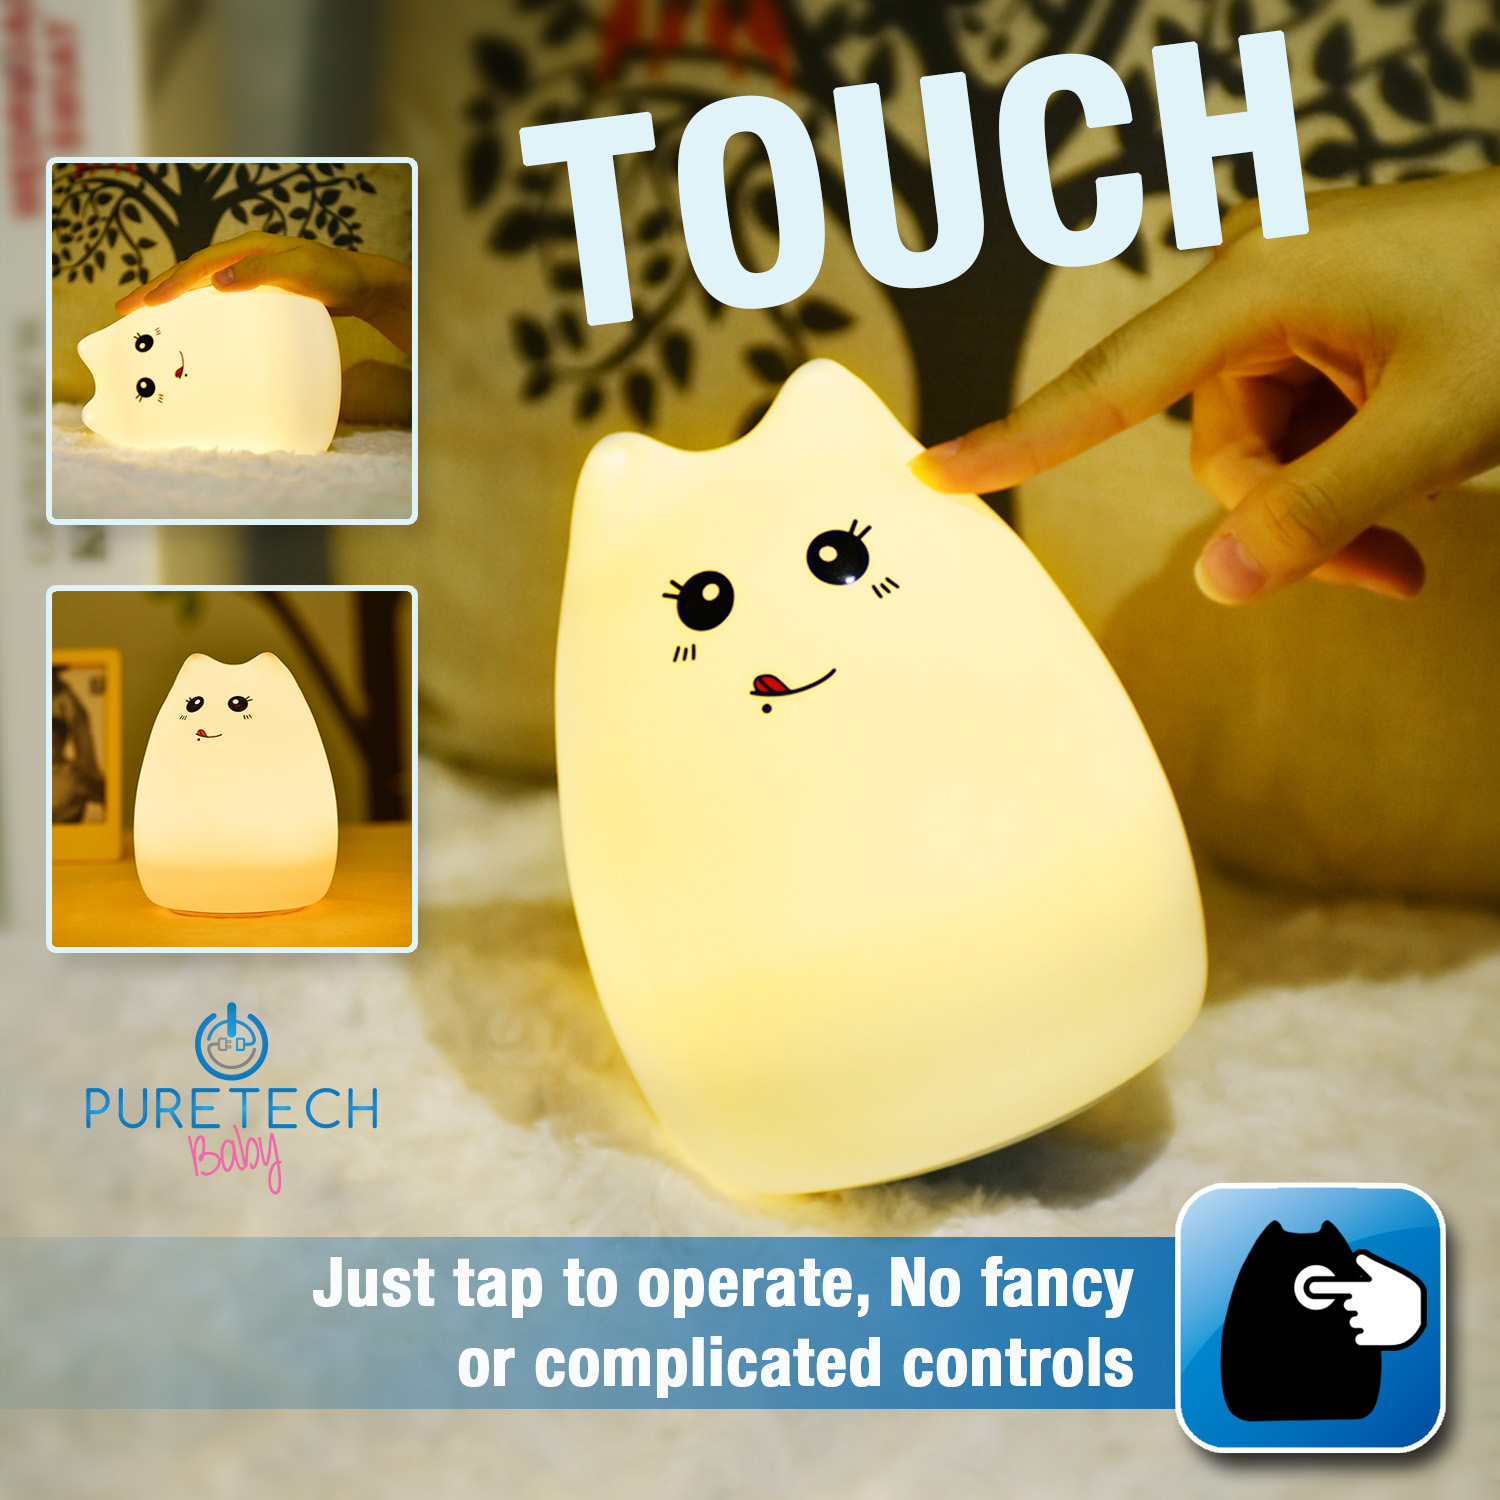 TOUCH - Easy to use, just tap to operate.